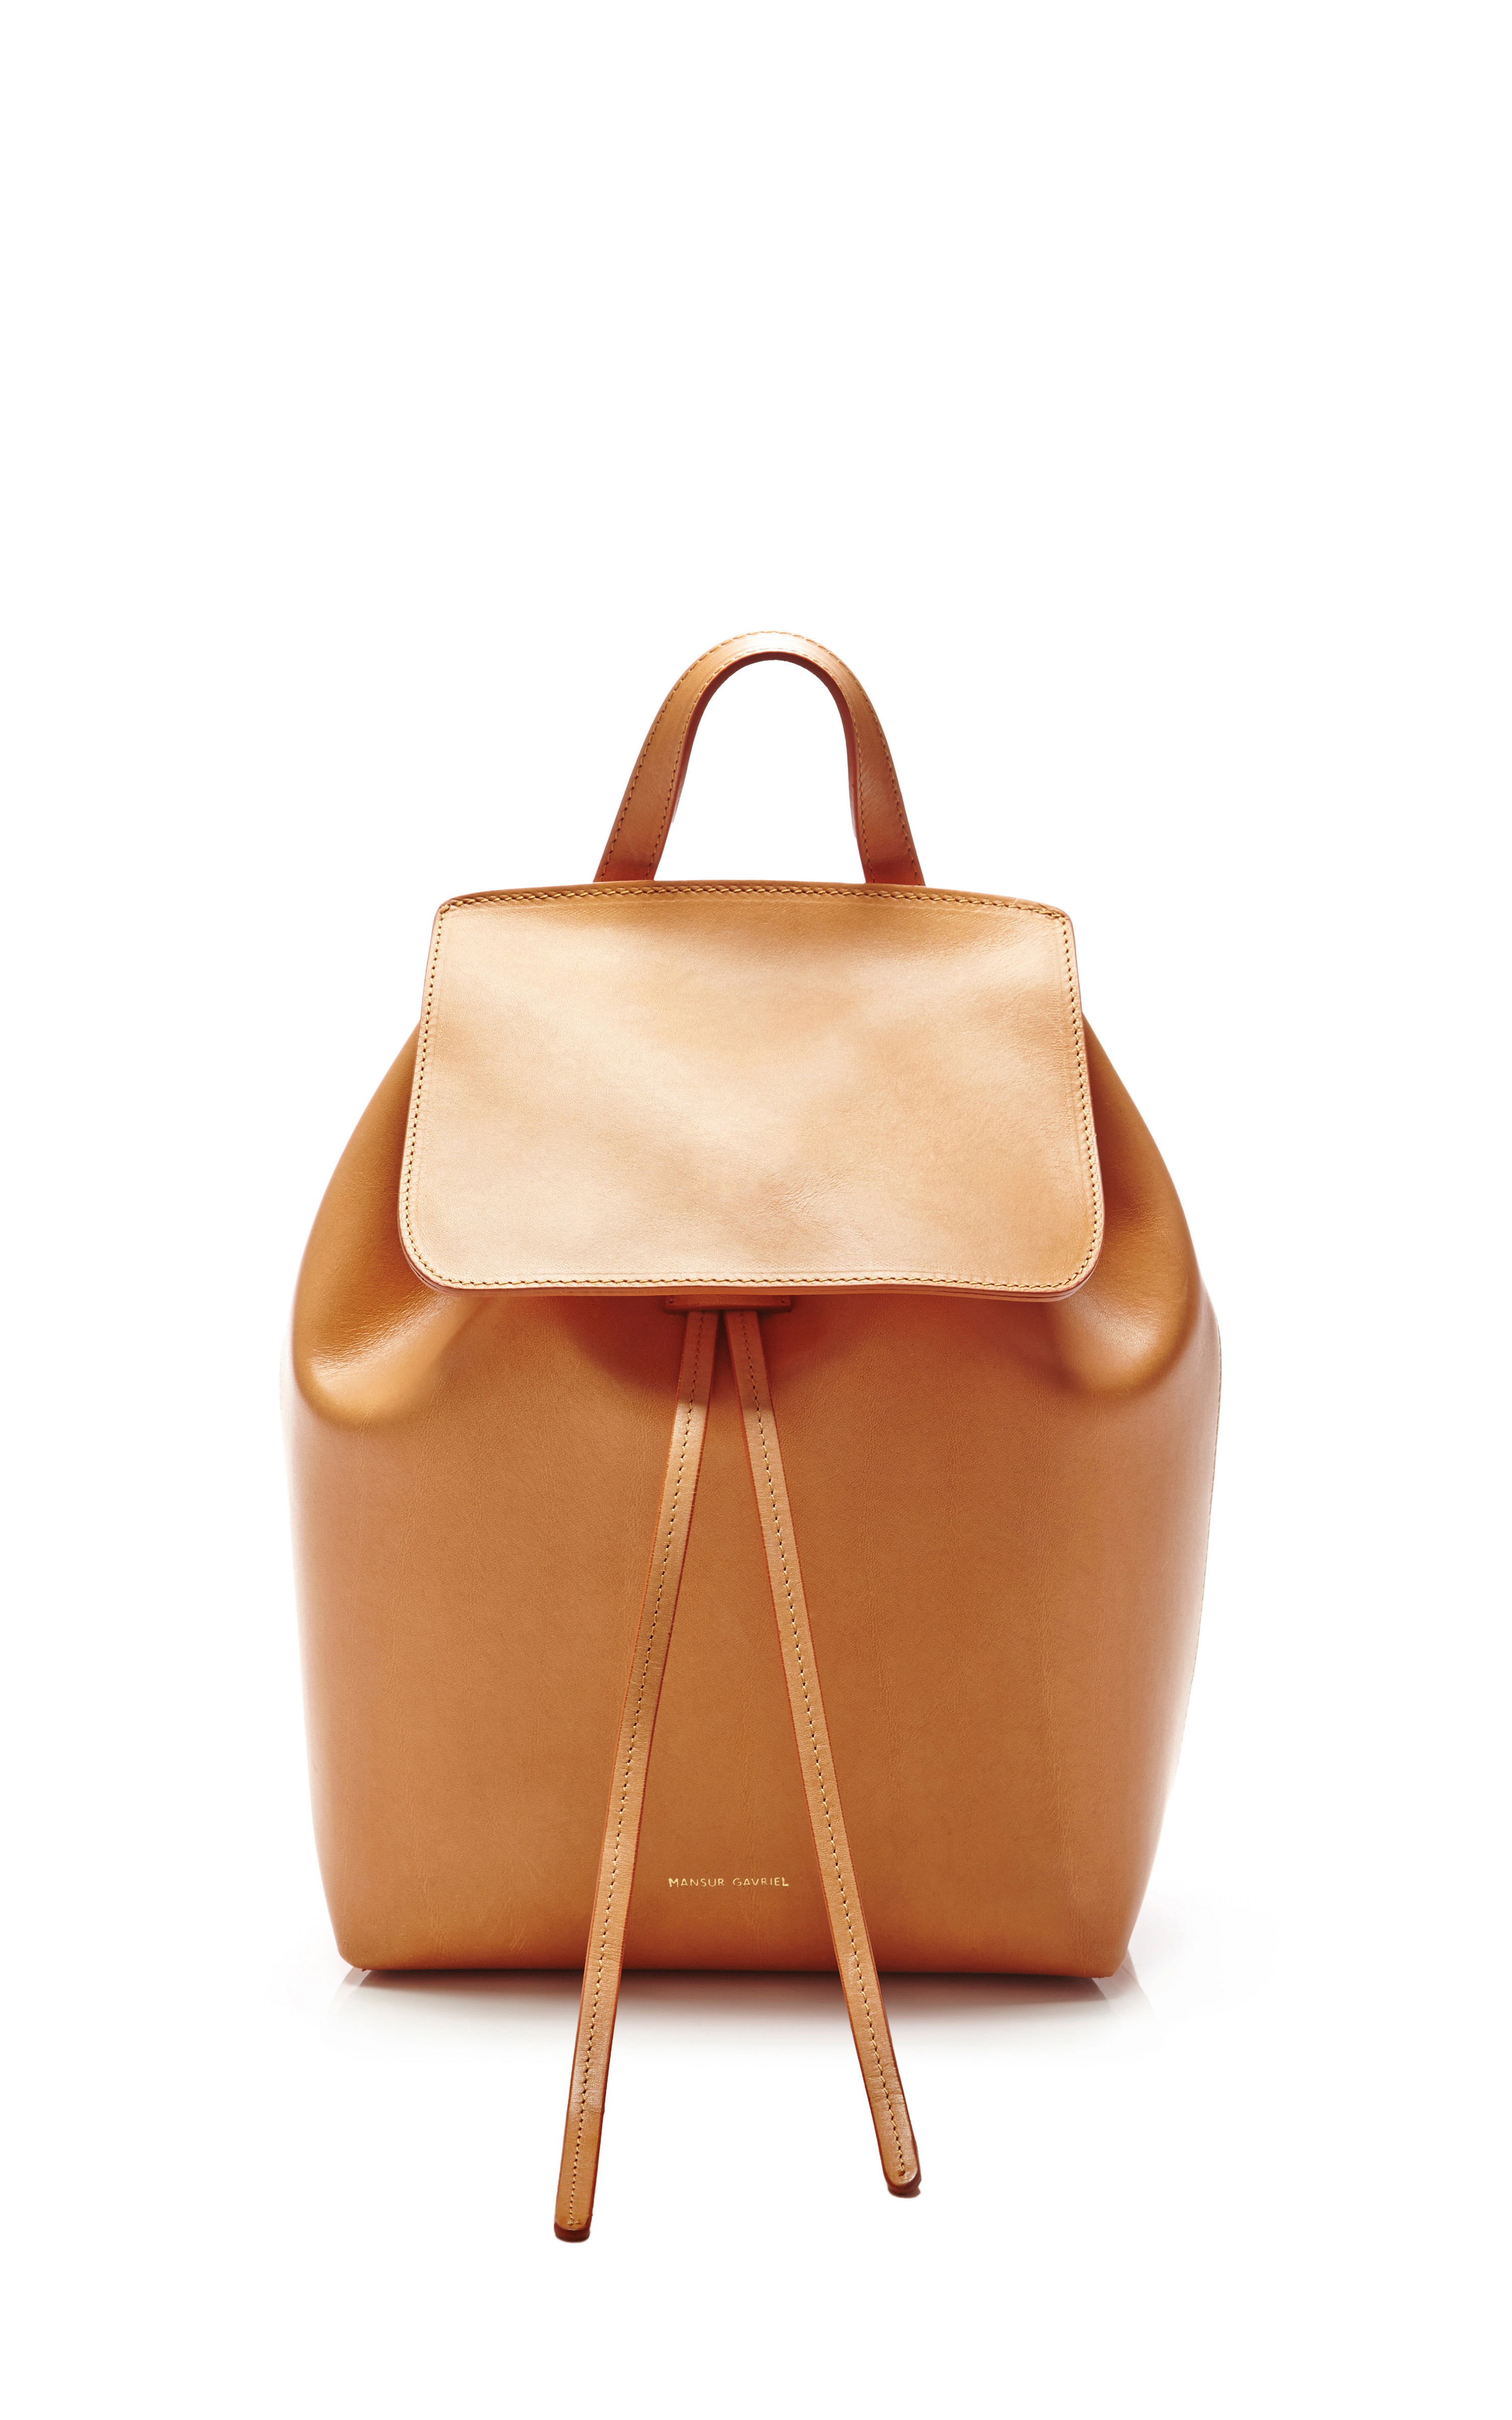 Mansur gavriel Mini Backpack in Camello with Orange in Natural | Lyst